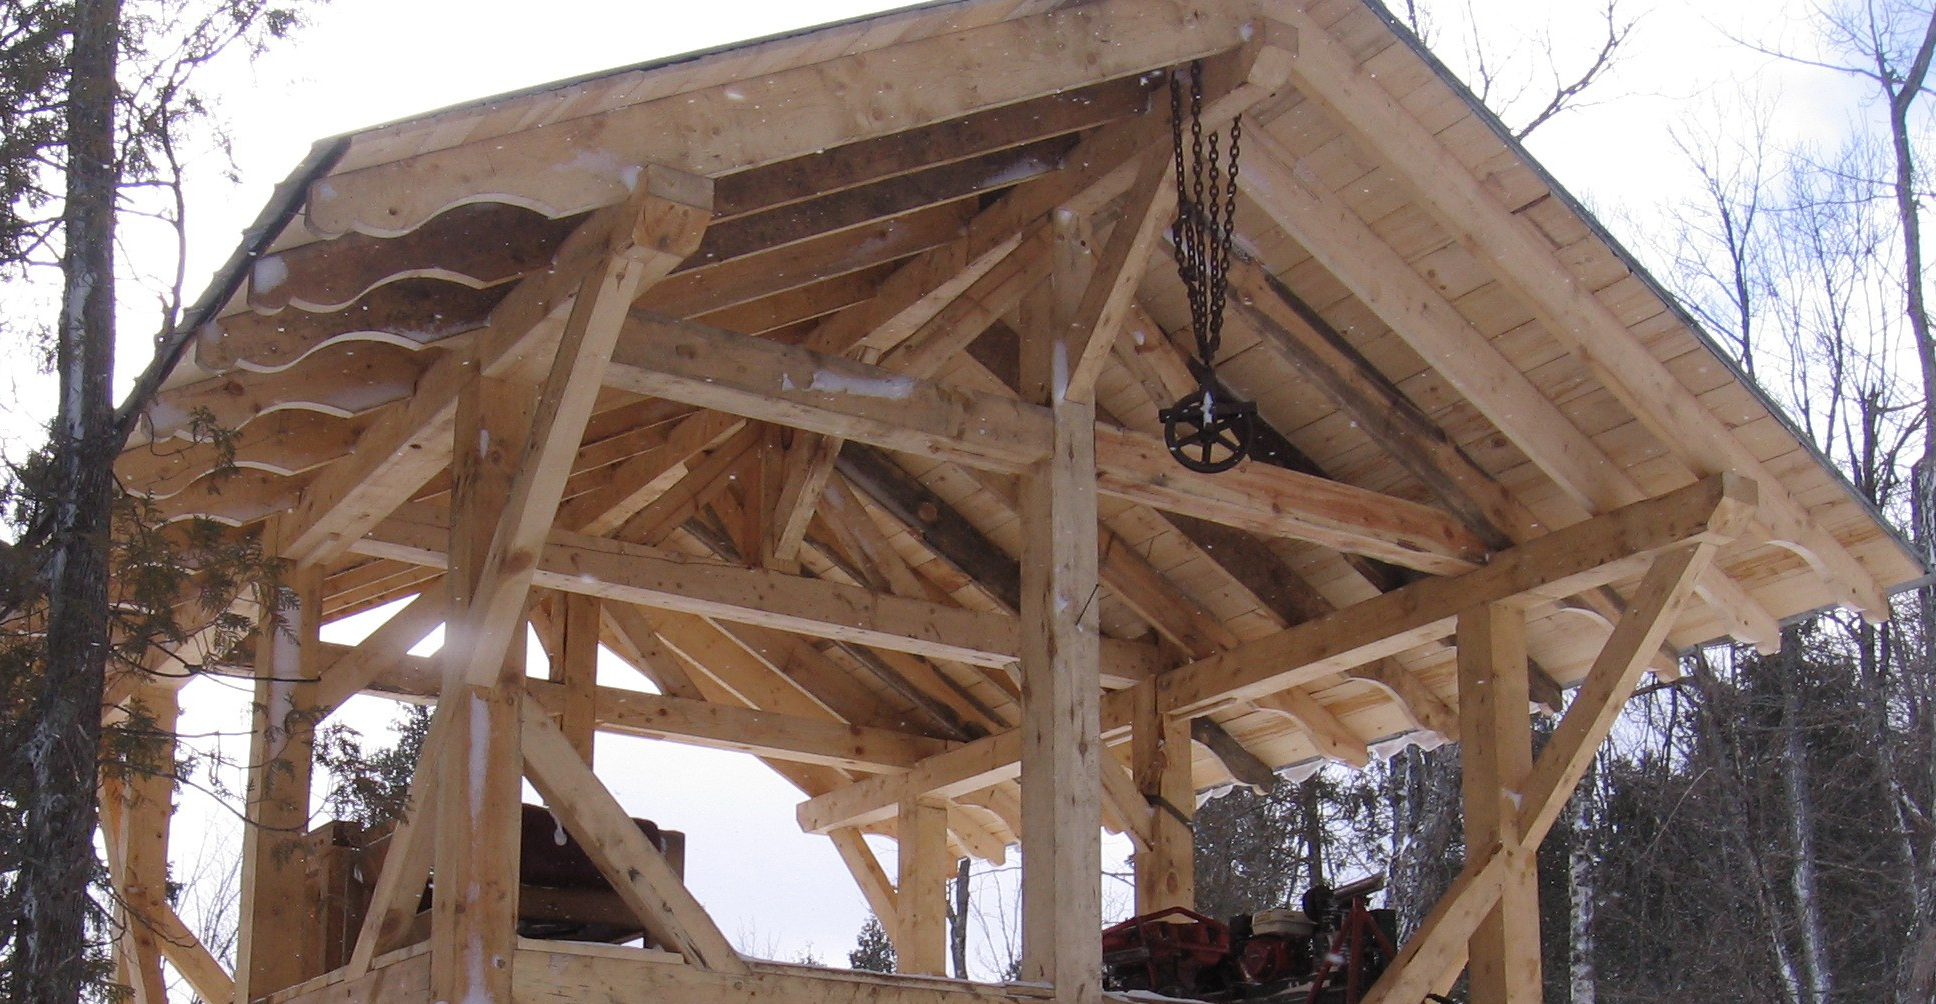 Timber Framing From Scratch on The North Shore | Sonju Lake